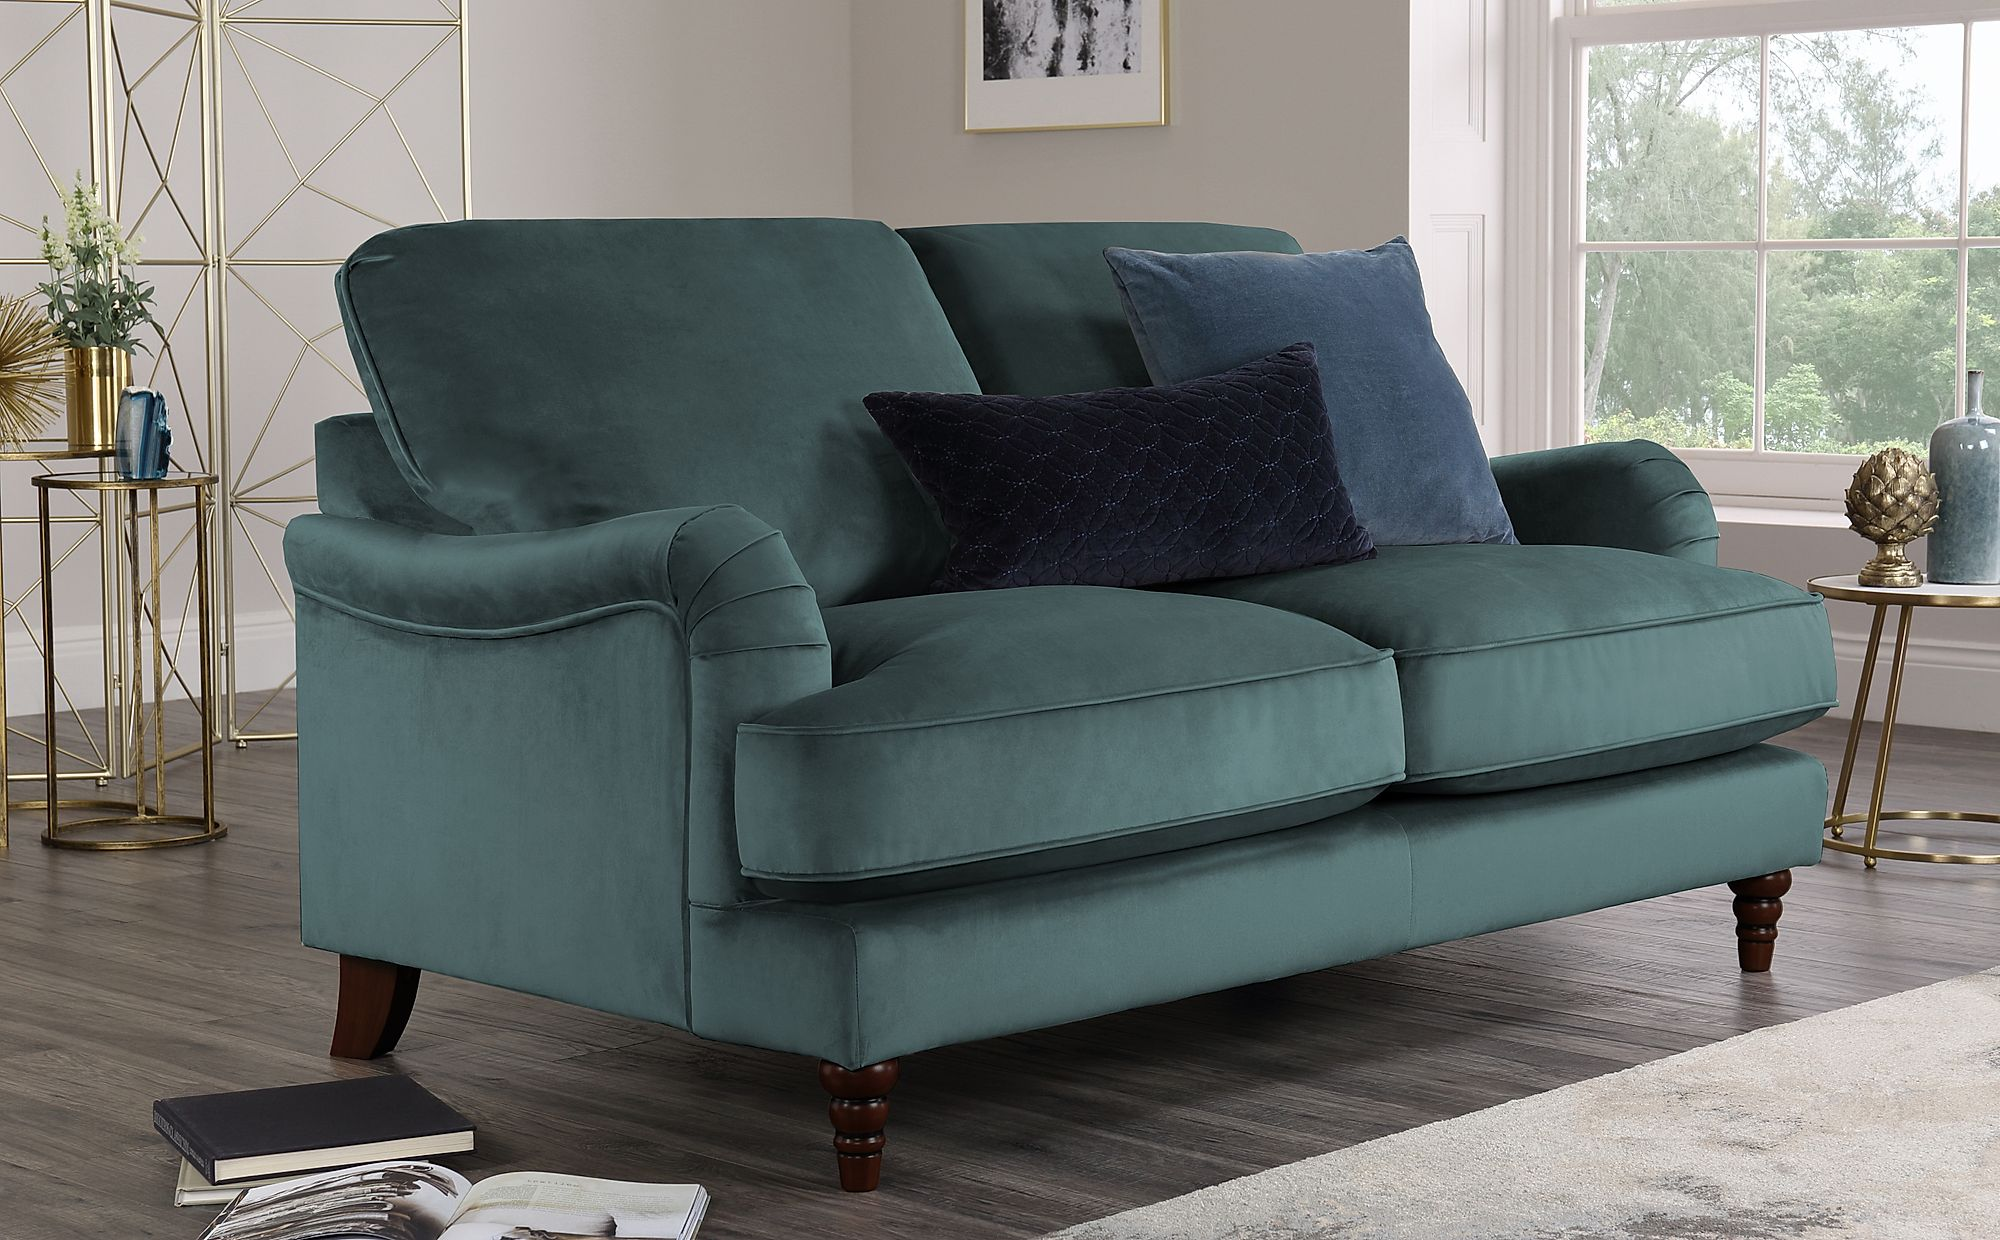 Charleston Blue Velvet Sofa 2 Seater Only £649.99